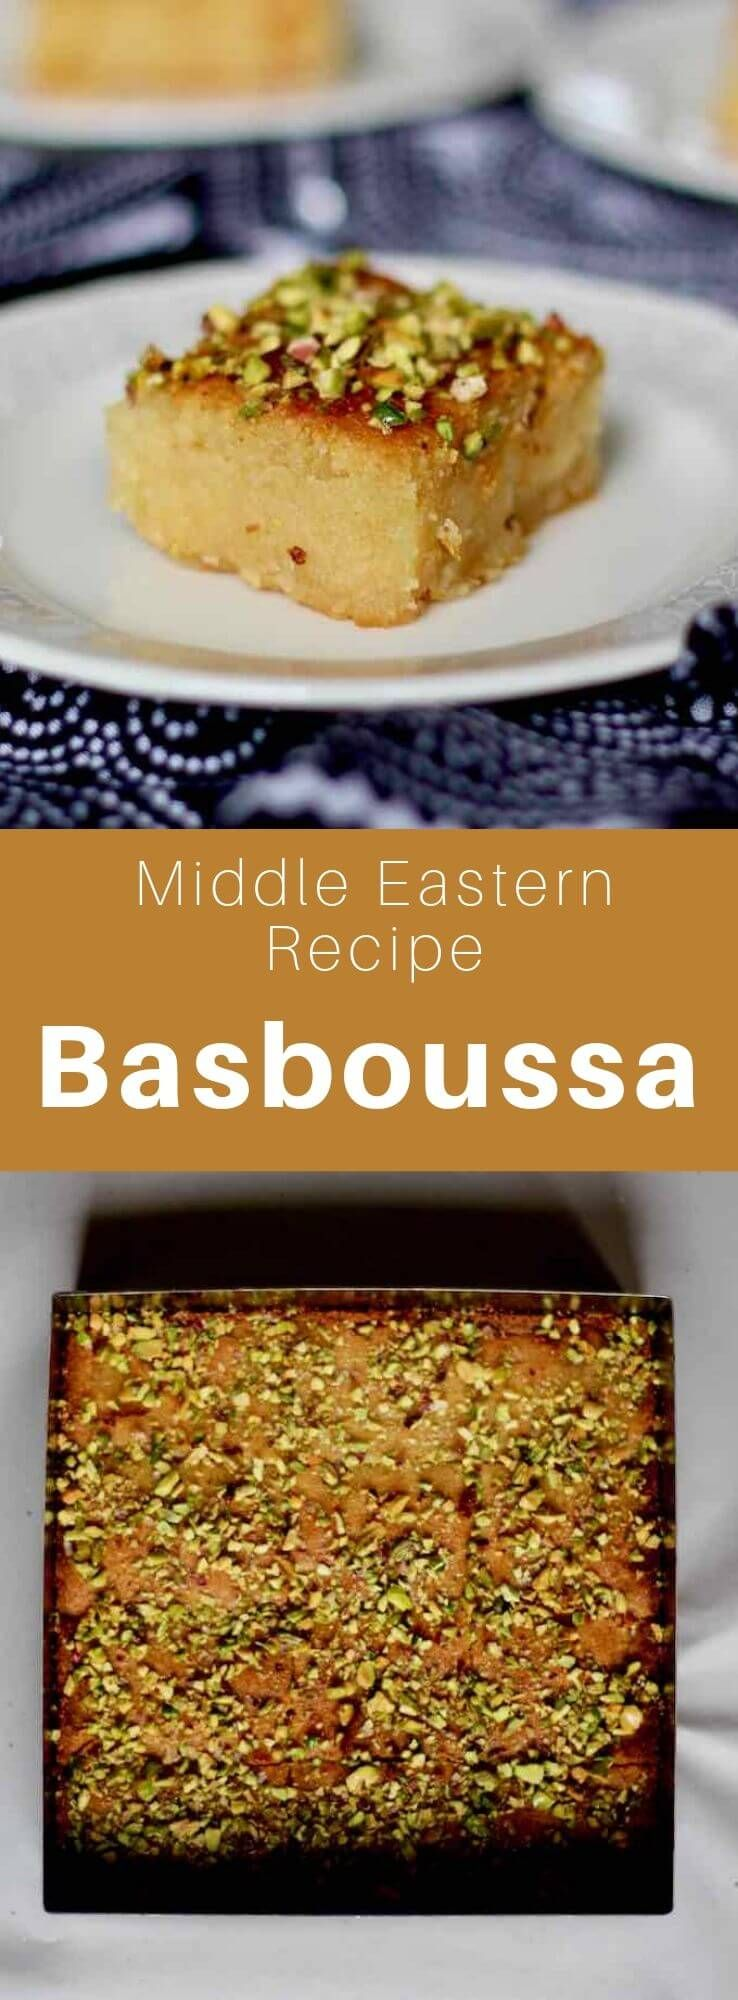 Basbousa is a pastry typical of the Middle East, North Africa and the Balkans made from semolina and ground almonds, that is soaked in flavored syrup. #LevantineCuisine #LevantineFood #LevantineRecipe #MiddleEasternCuisine #MiddleEasternRecipe #MiddleEasternFood #ArabCuisine #ArabRecipe #ArabFood #JewishFood #JewishCuisine #JewishRecipe #WorldCuisine #196flavors #middleeast